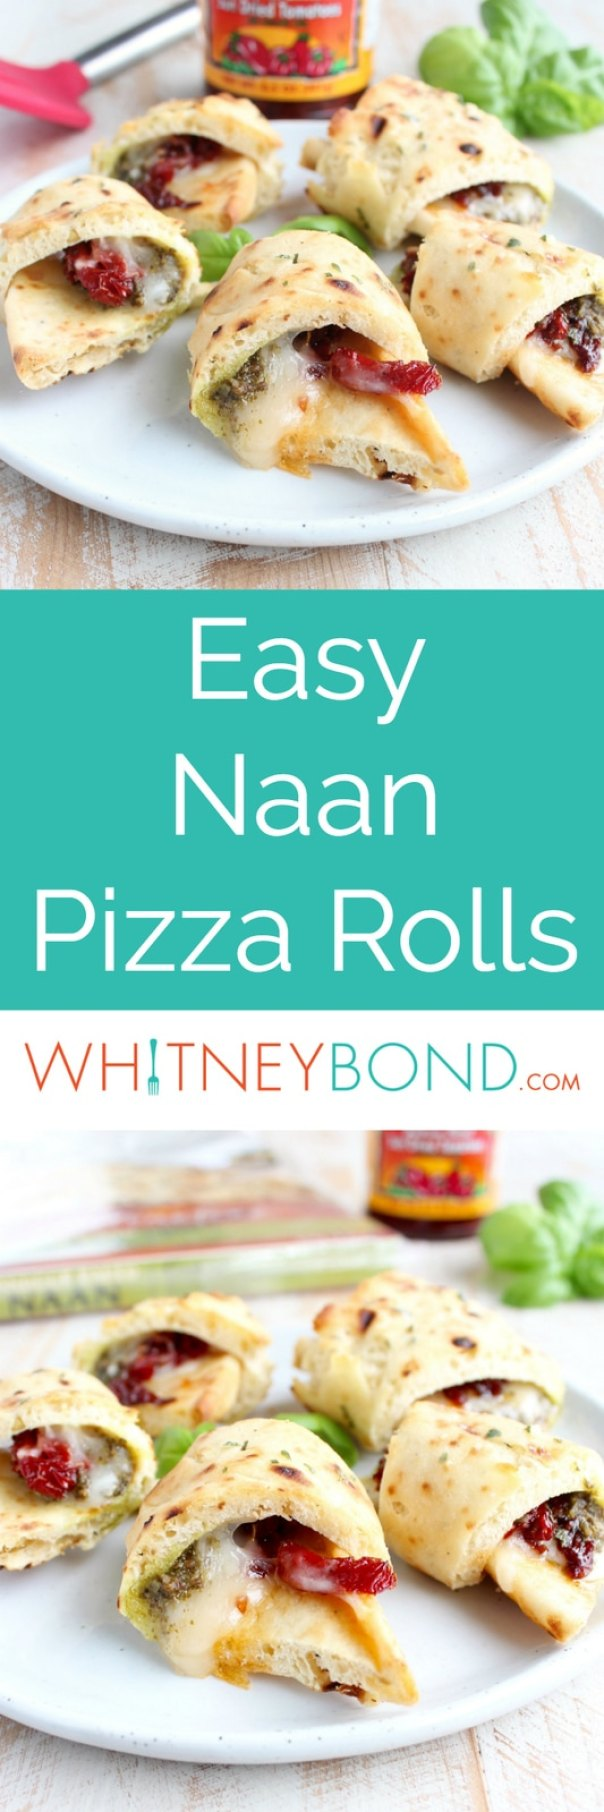 Mozzarella, sun dried tomatoes and basil pesto are wrapped up in garlic naan and baked into delicious pizza rolls, perfect for a party appetizer or snack!